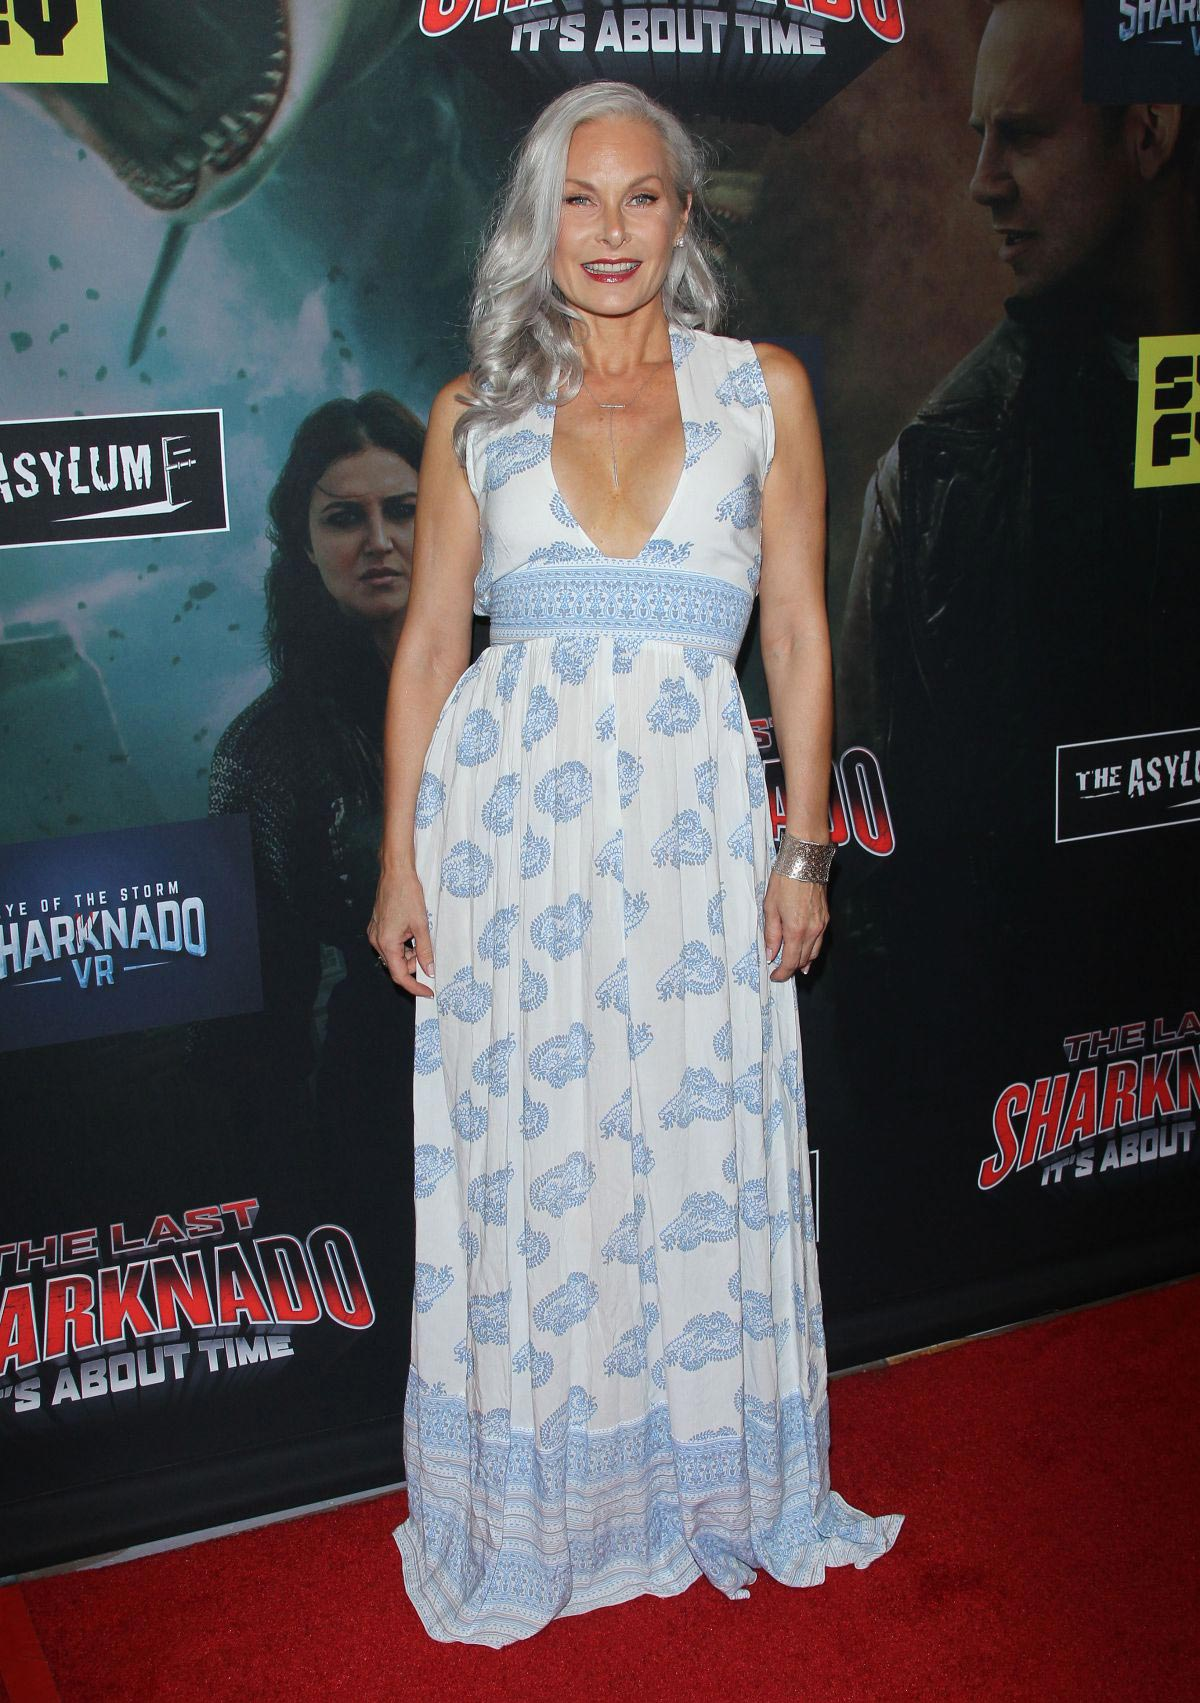 Monique Parent At The Last Sharknado Its About Time Premiere In